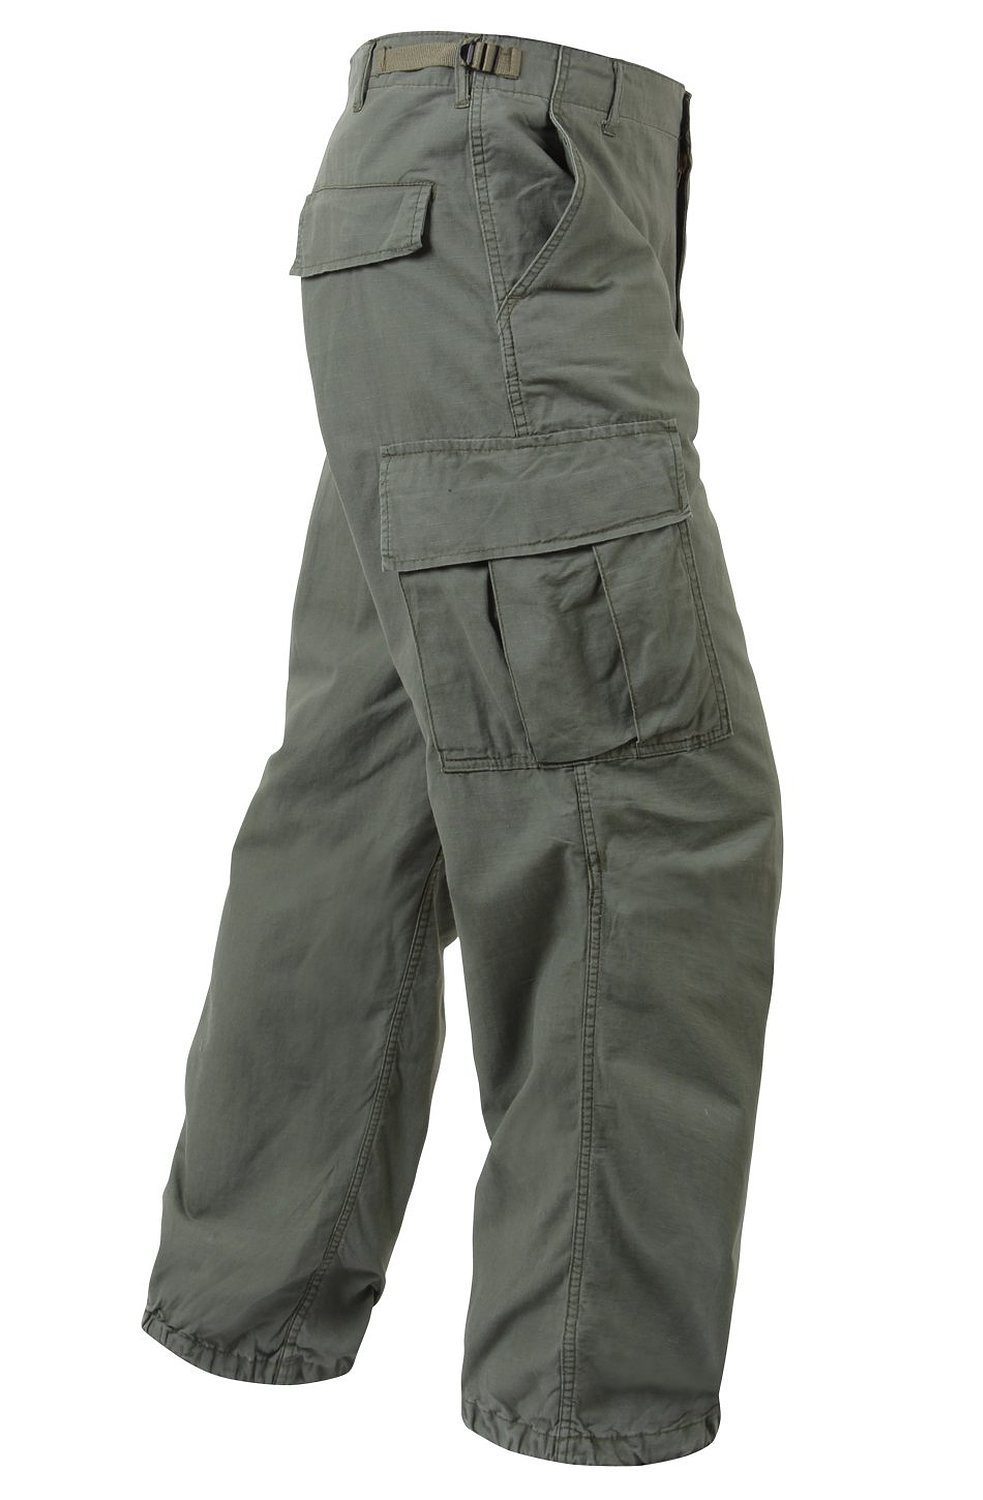 Rothco Vintage R/S Vietnam Fatigue Pants 4388